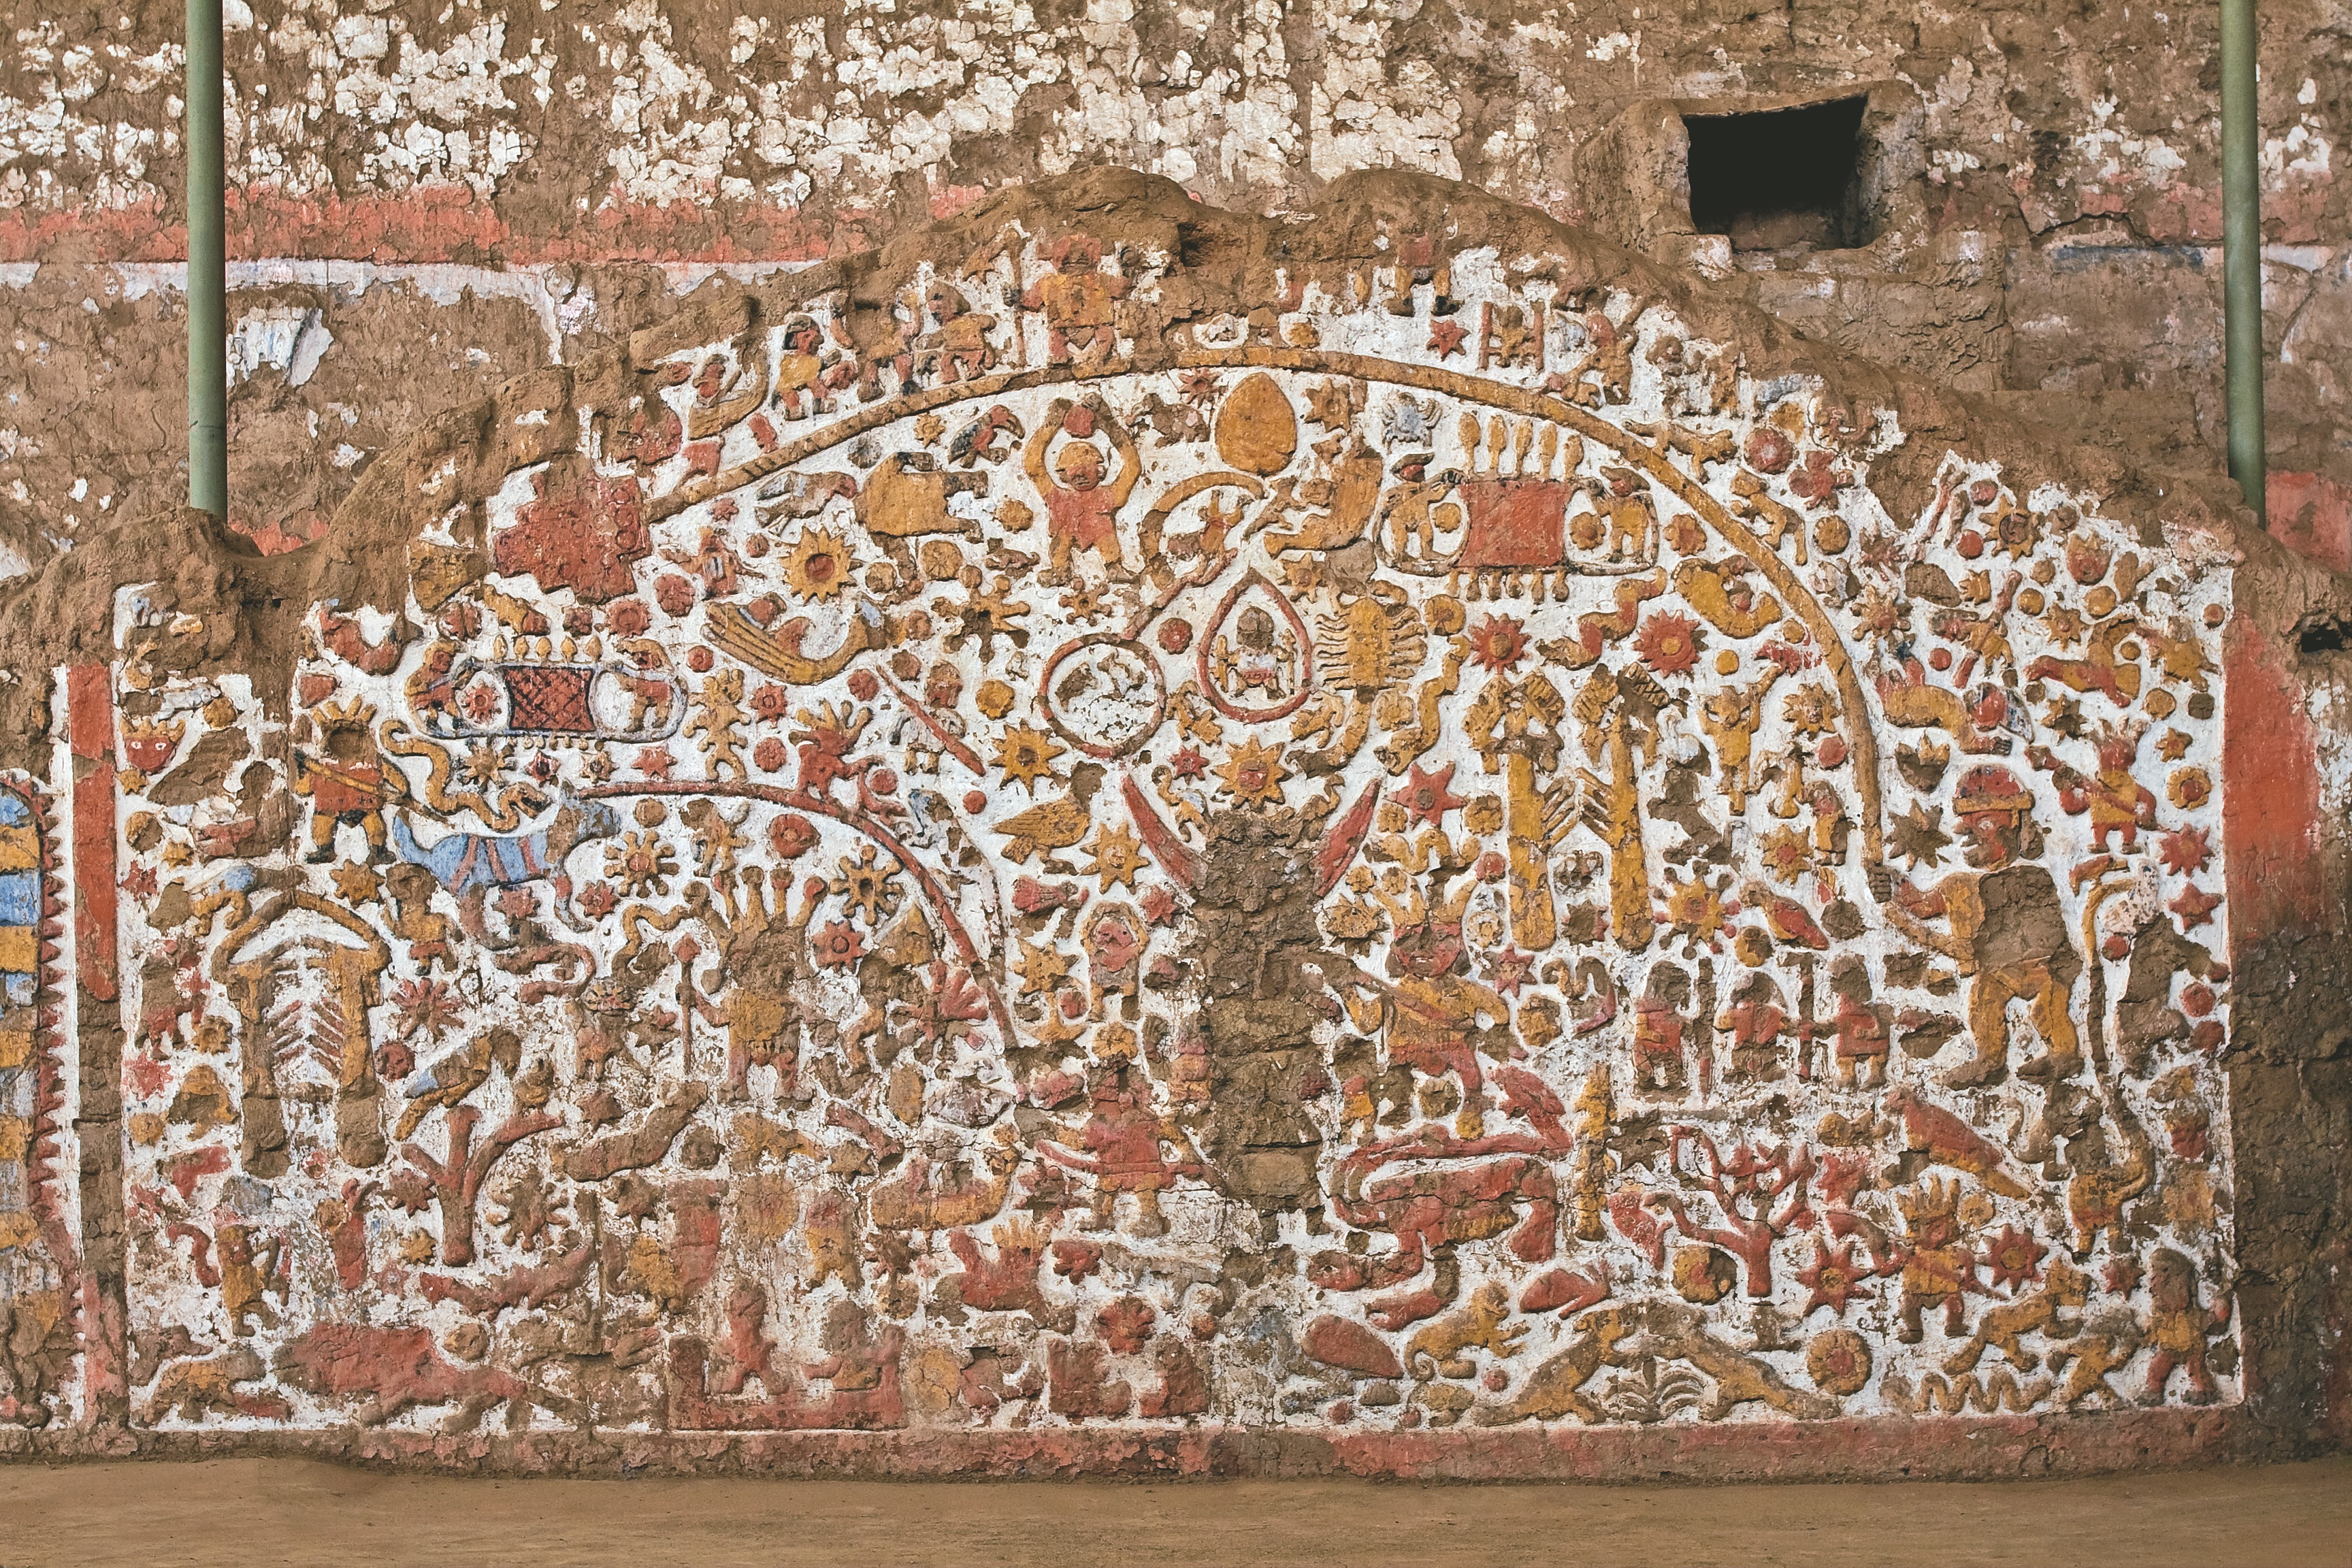 Mural of the Moche myths of the corner enclosure atrium. Located in the north facade of the Old Temple main building.